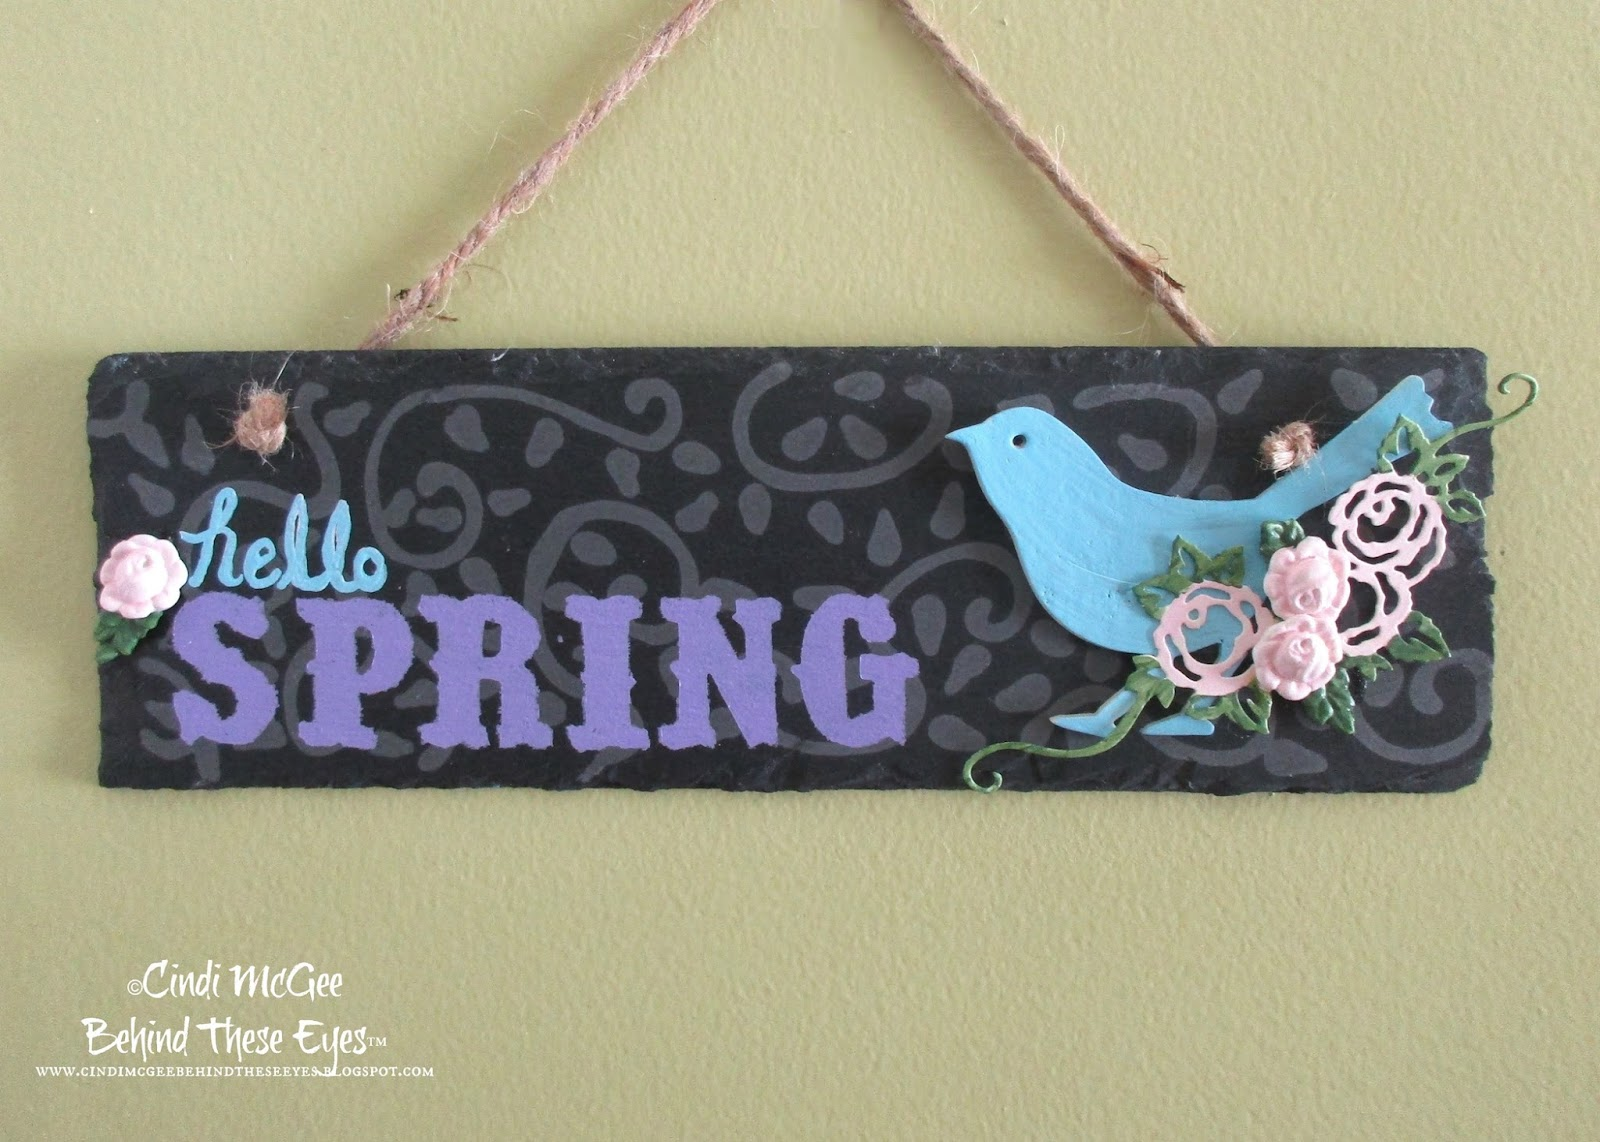 """Hello Spring Slate"" - When Creativity Knocks"